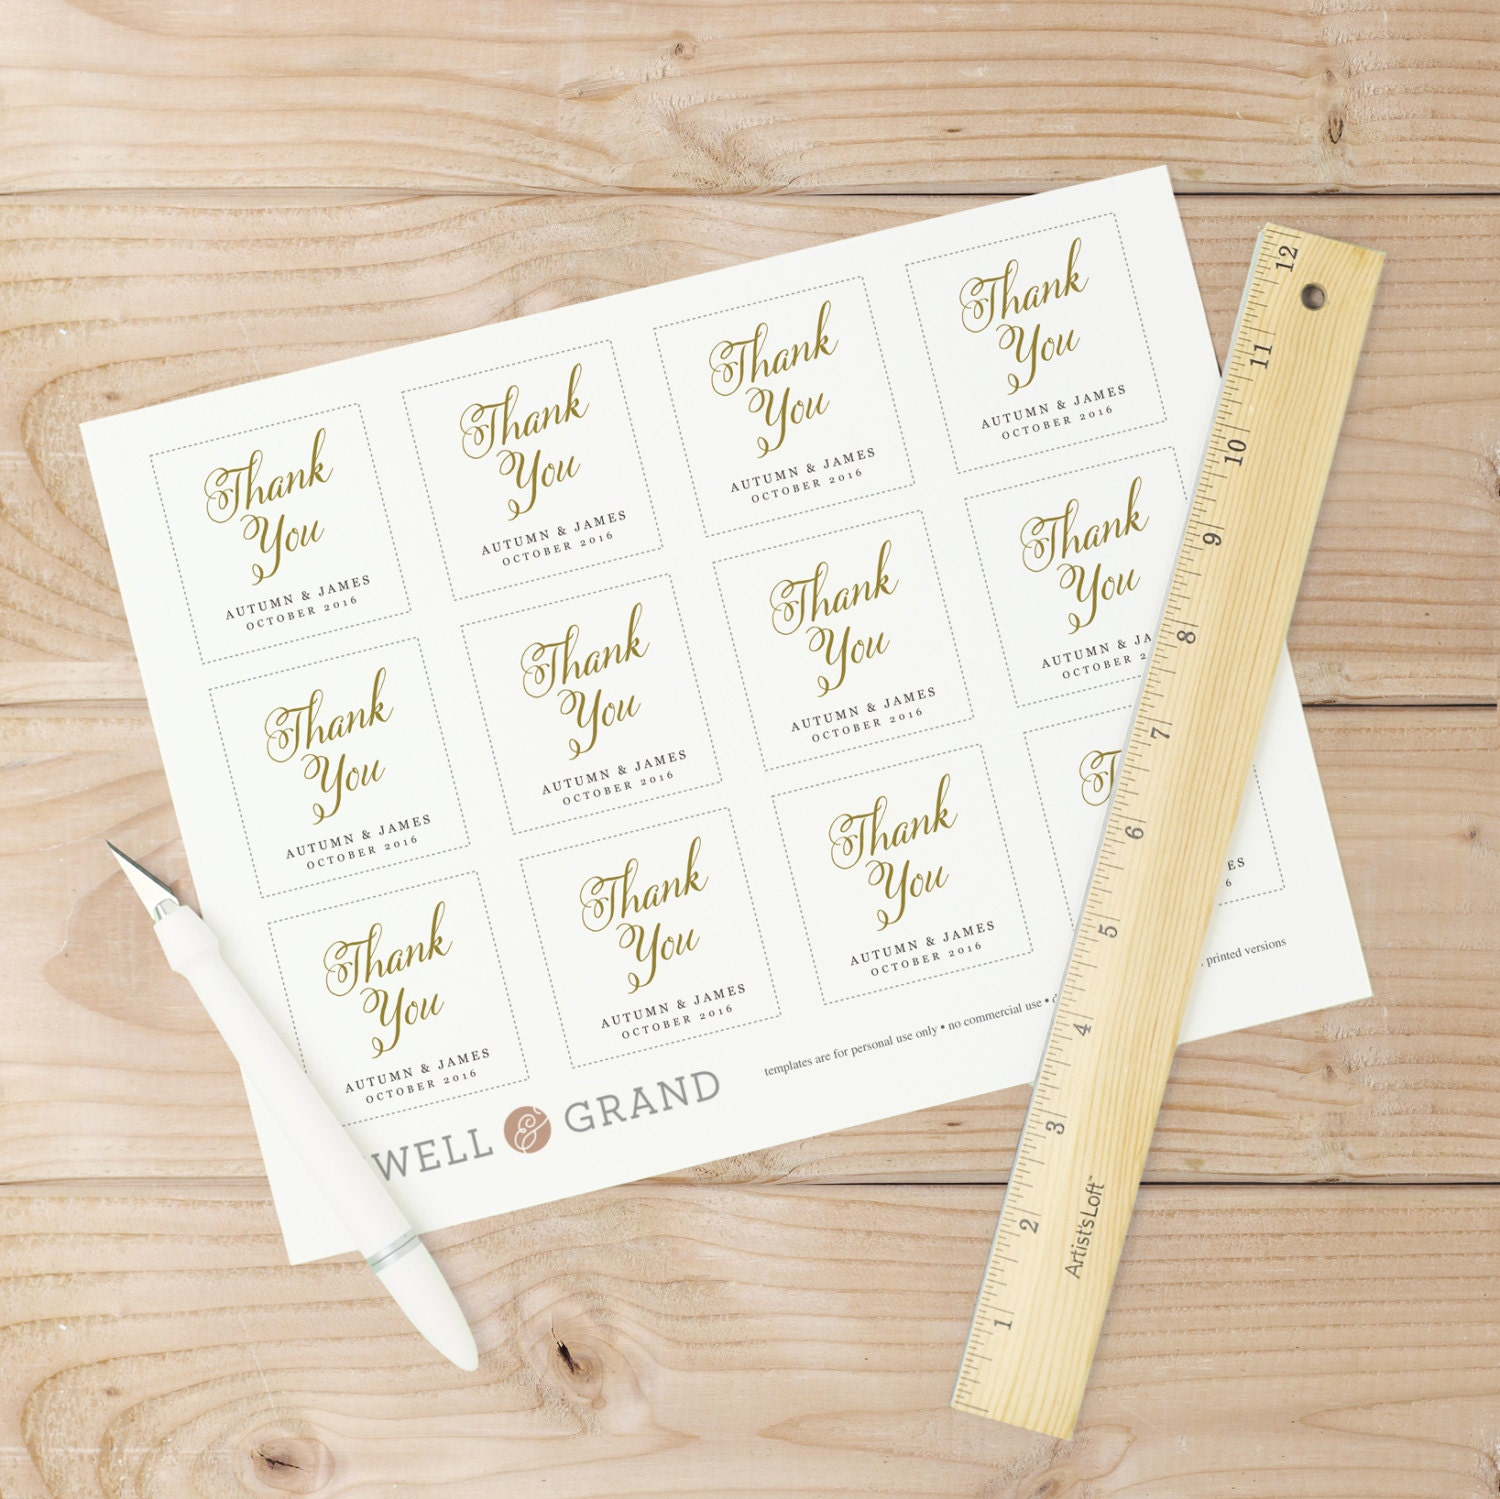 Wedding Favor Tags Word Template : Wedding Favor Tags, Favor Tag Template, Romantic Script, Word ...